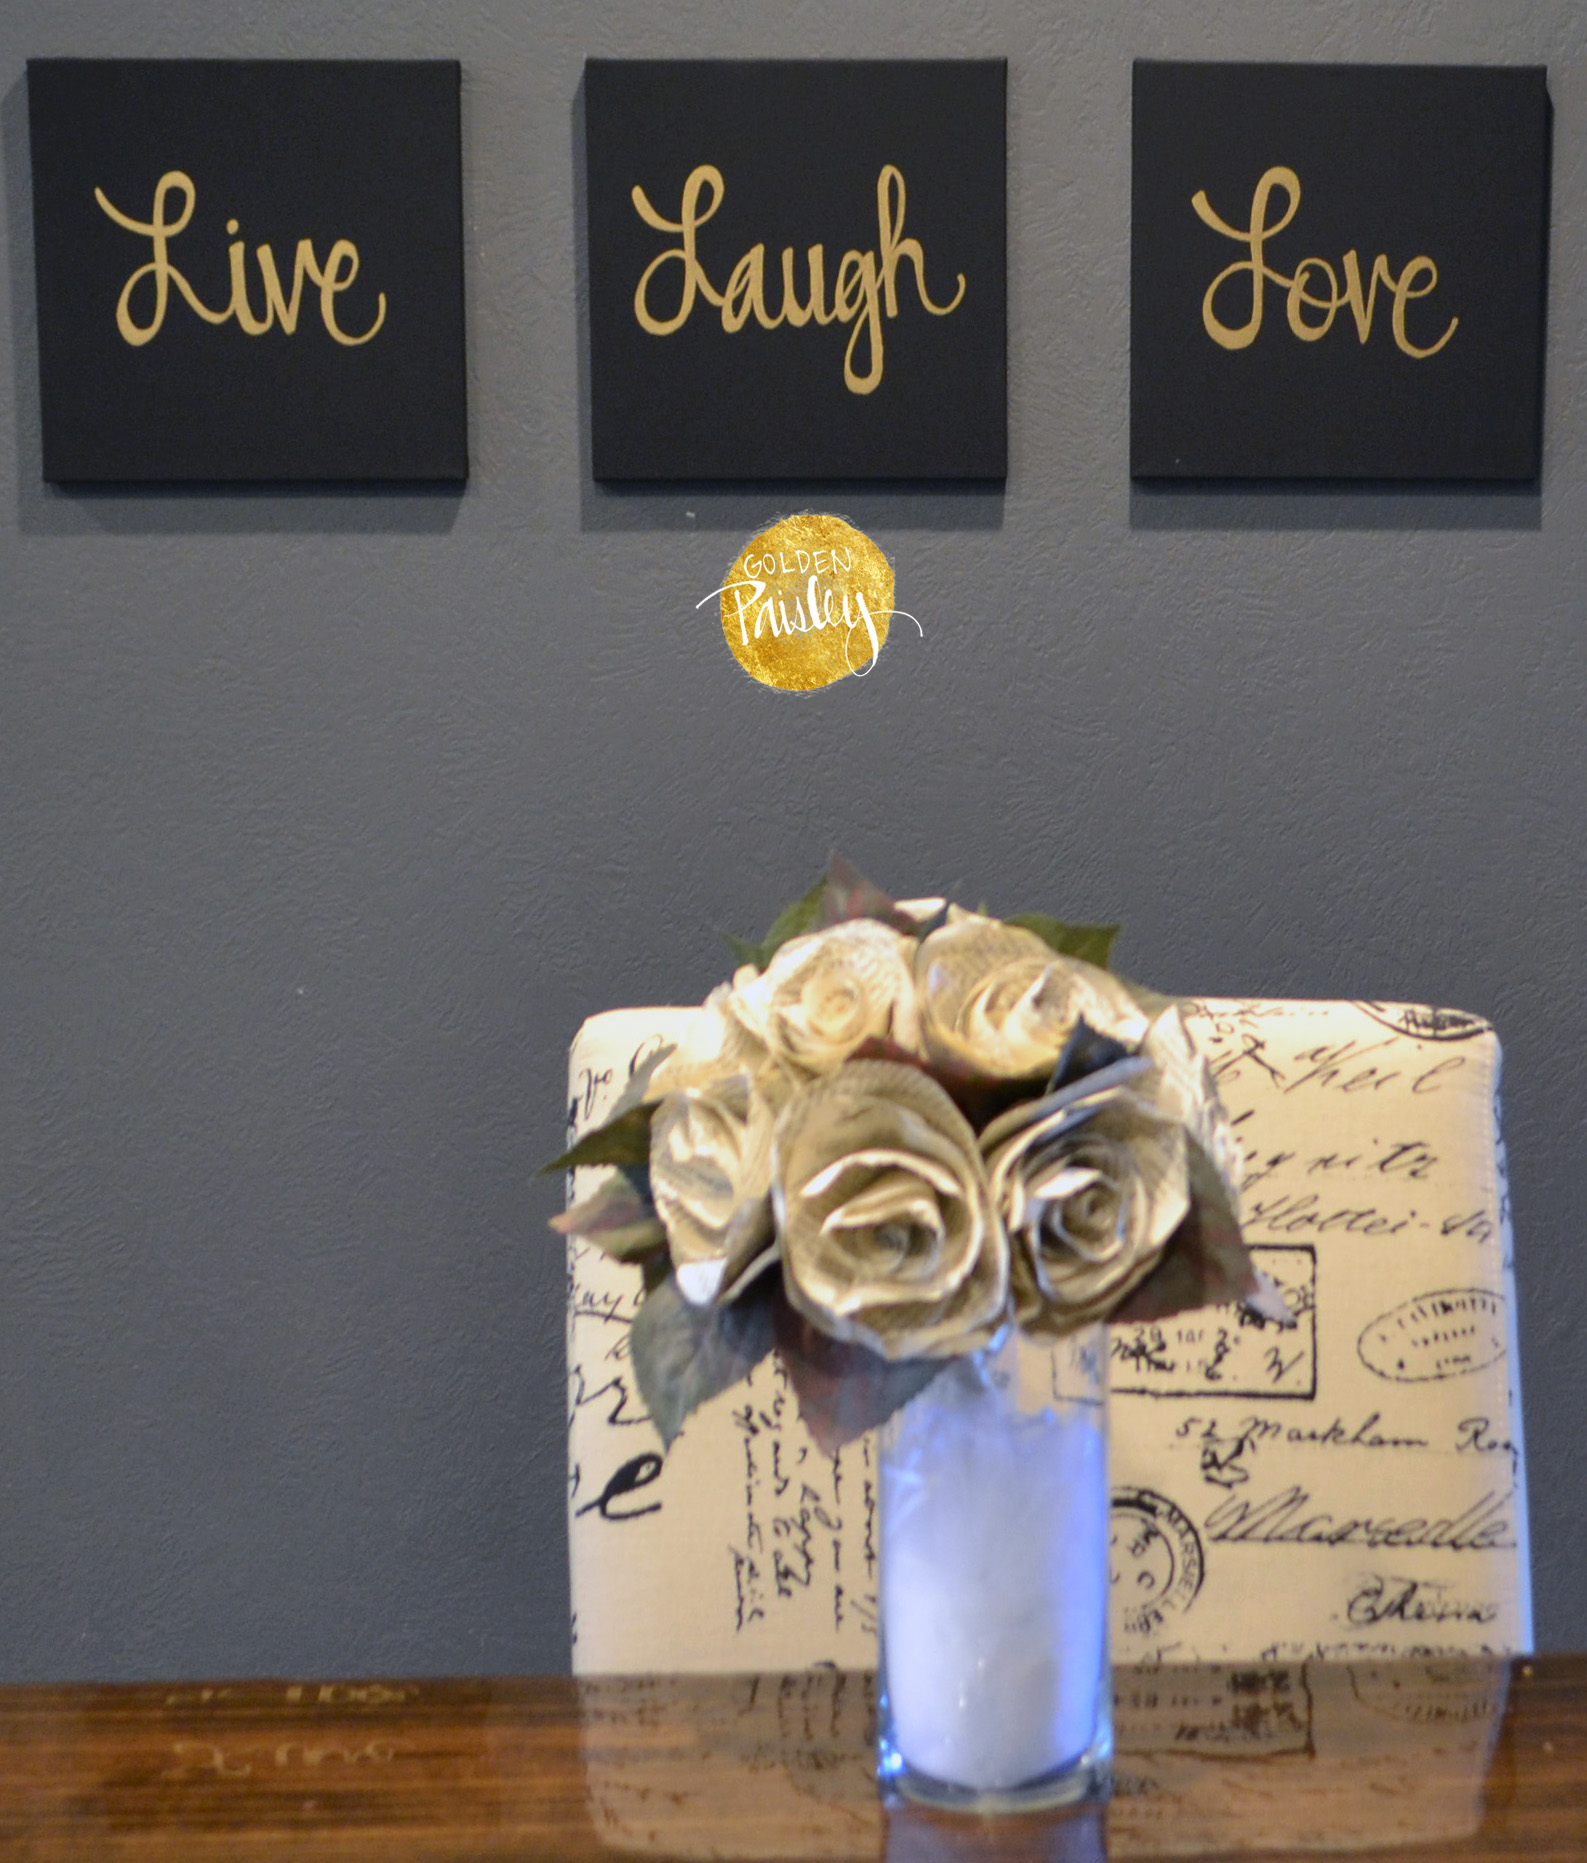 Live Love Laugh 3 Piece Black Wall Decor Sets intended for Well-known Live Laugh Love Black & Gold 3 Piece Wall Decor Set